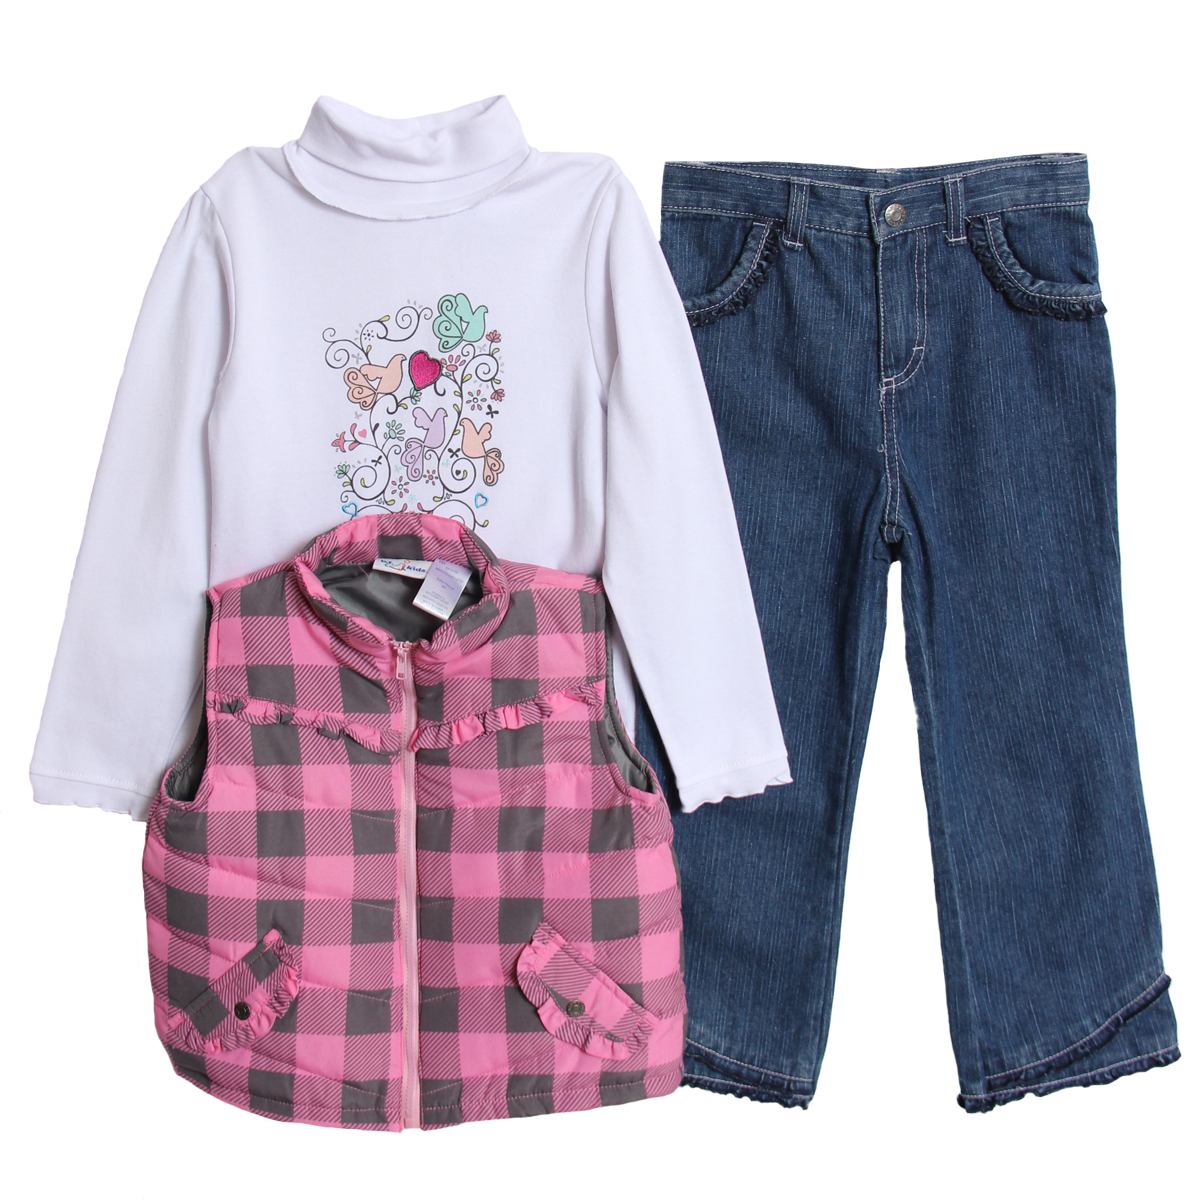 B.T. Kids Toddler Girls 3 Piece Pink Plaid Puffy Vest Turtleneck Jeans Pants Set at Sears.com